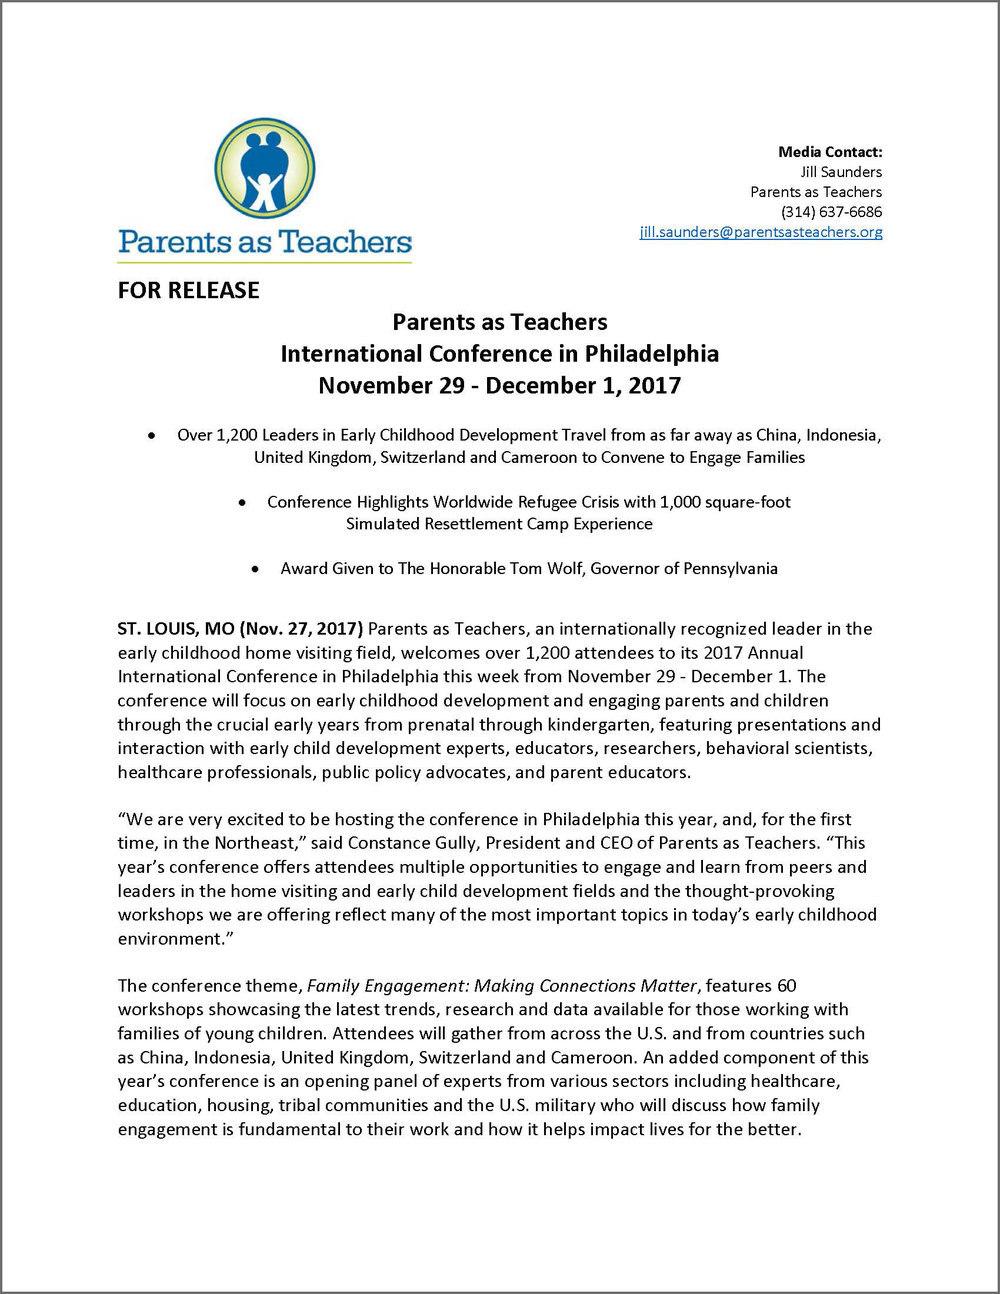 Click image above for PDF of full press release.